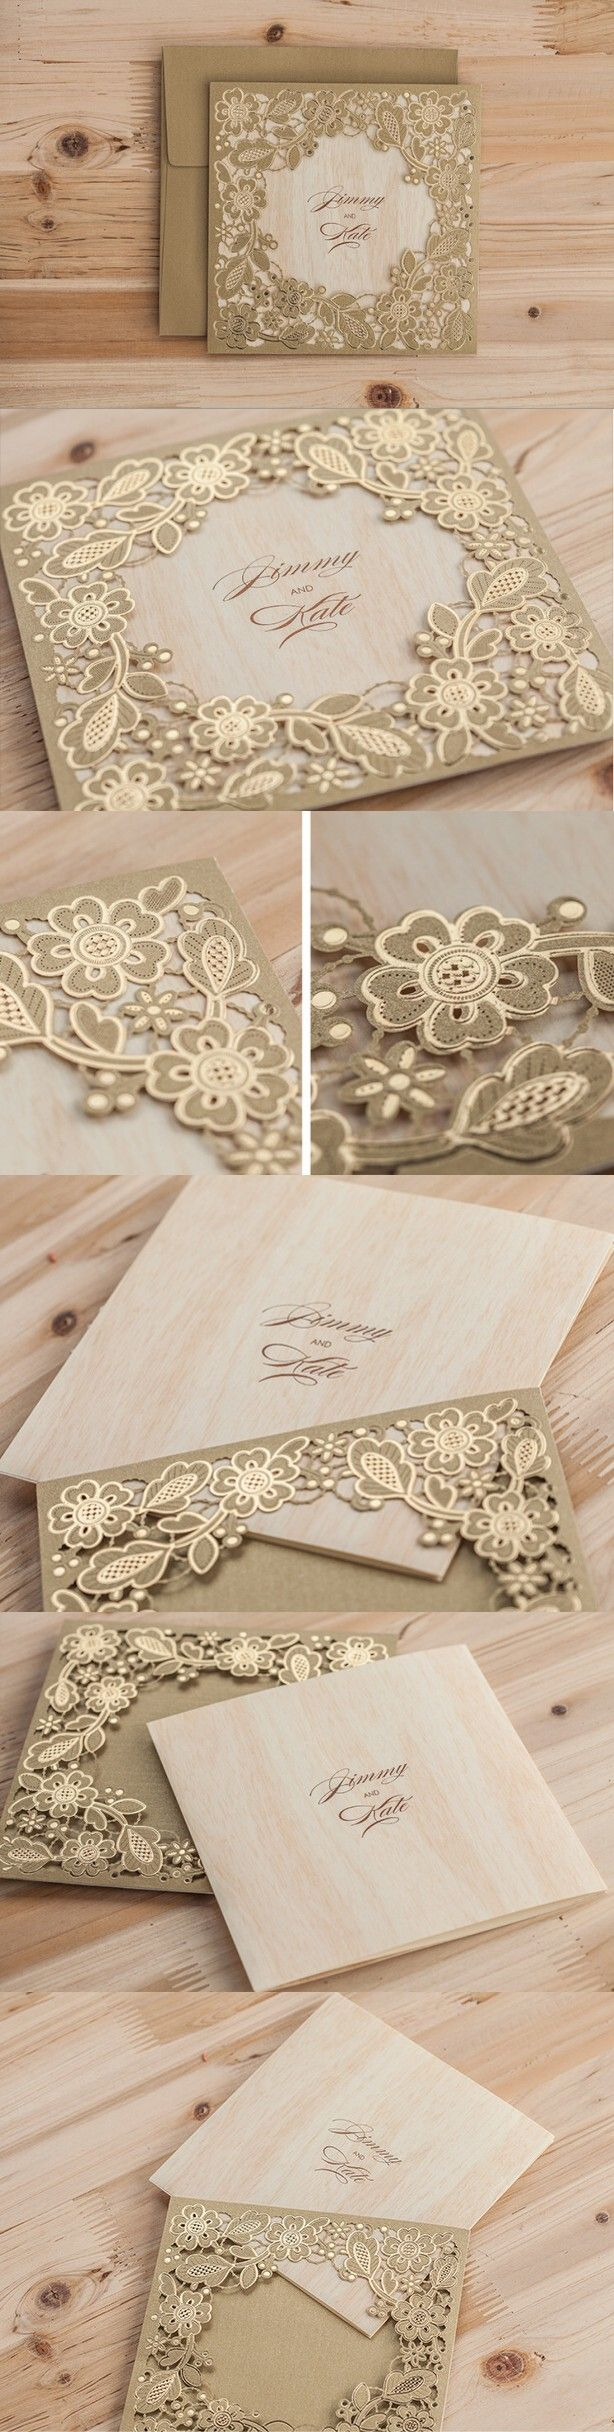 2016 Golden Flower Wedding Invitations, Lace Invitation Cards, Laser Cut Wedding Invitations Meter Gold Free Printing